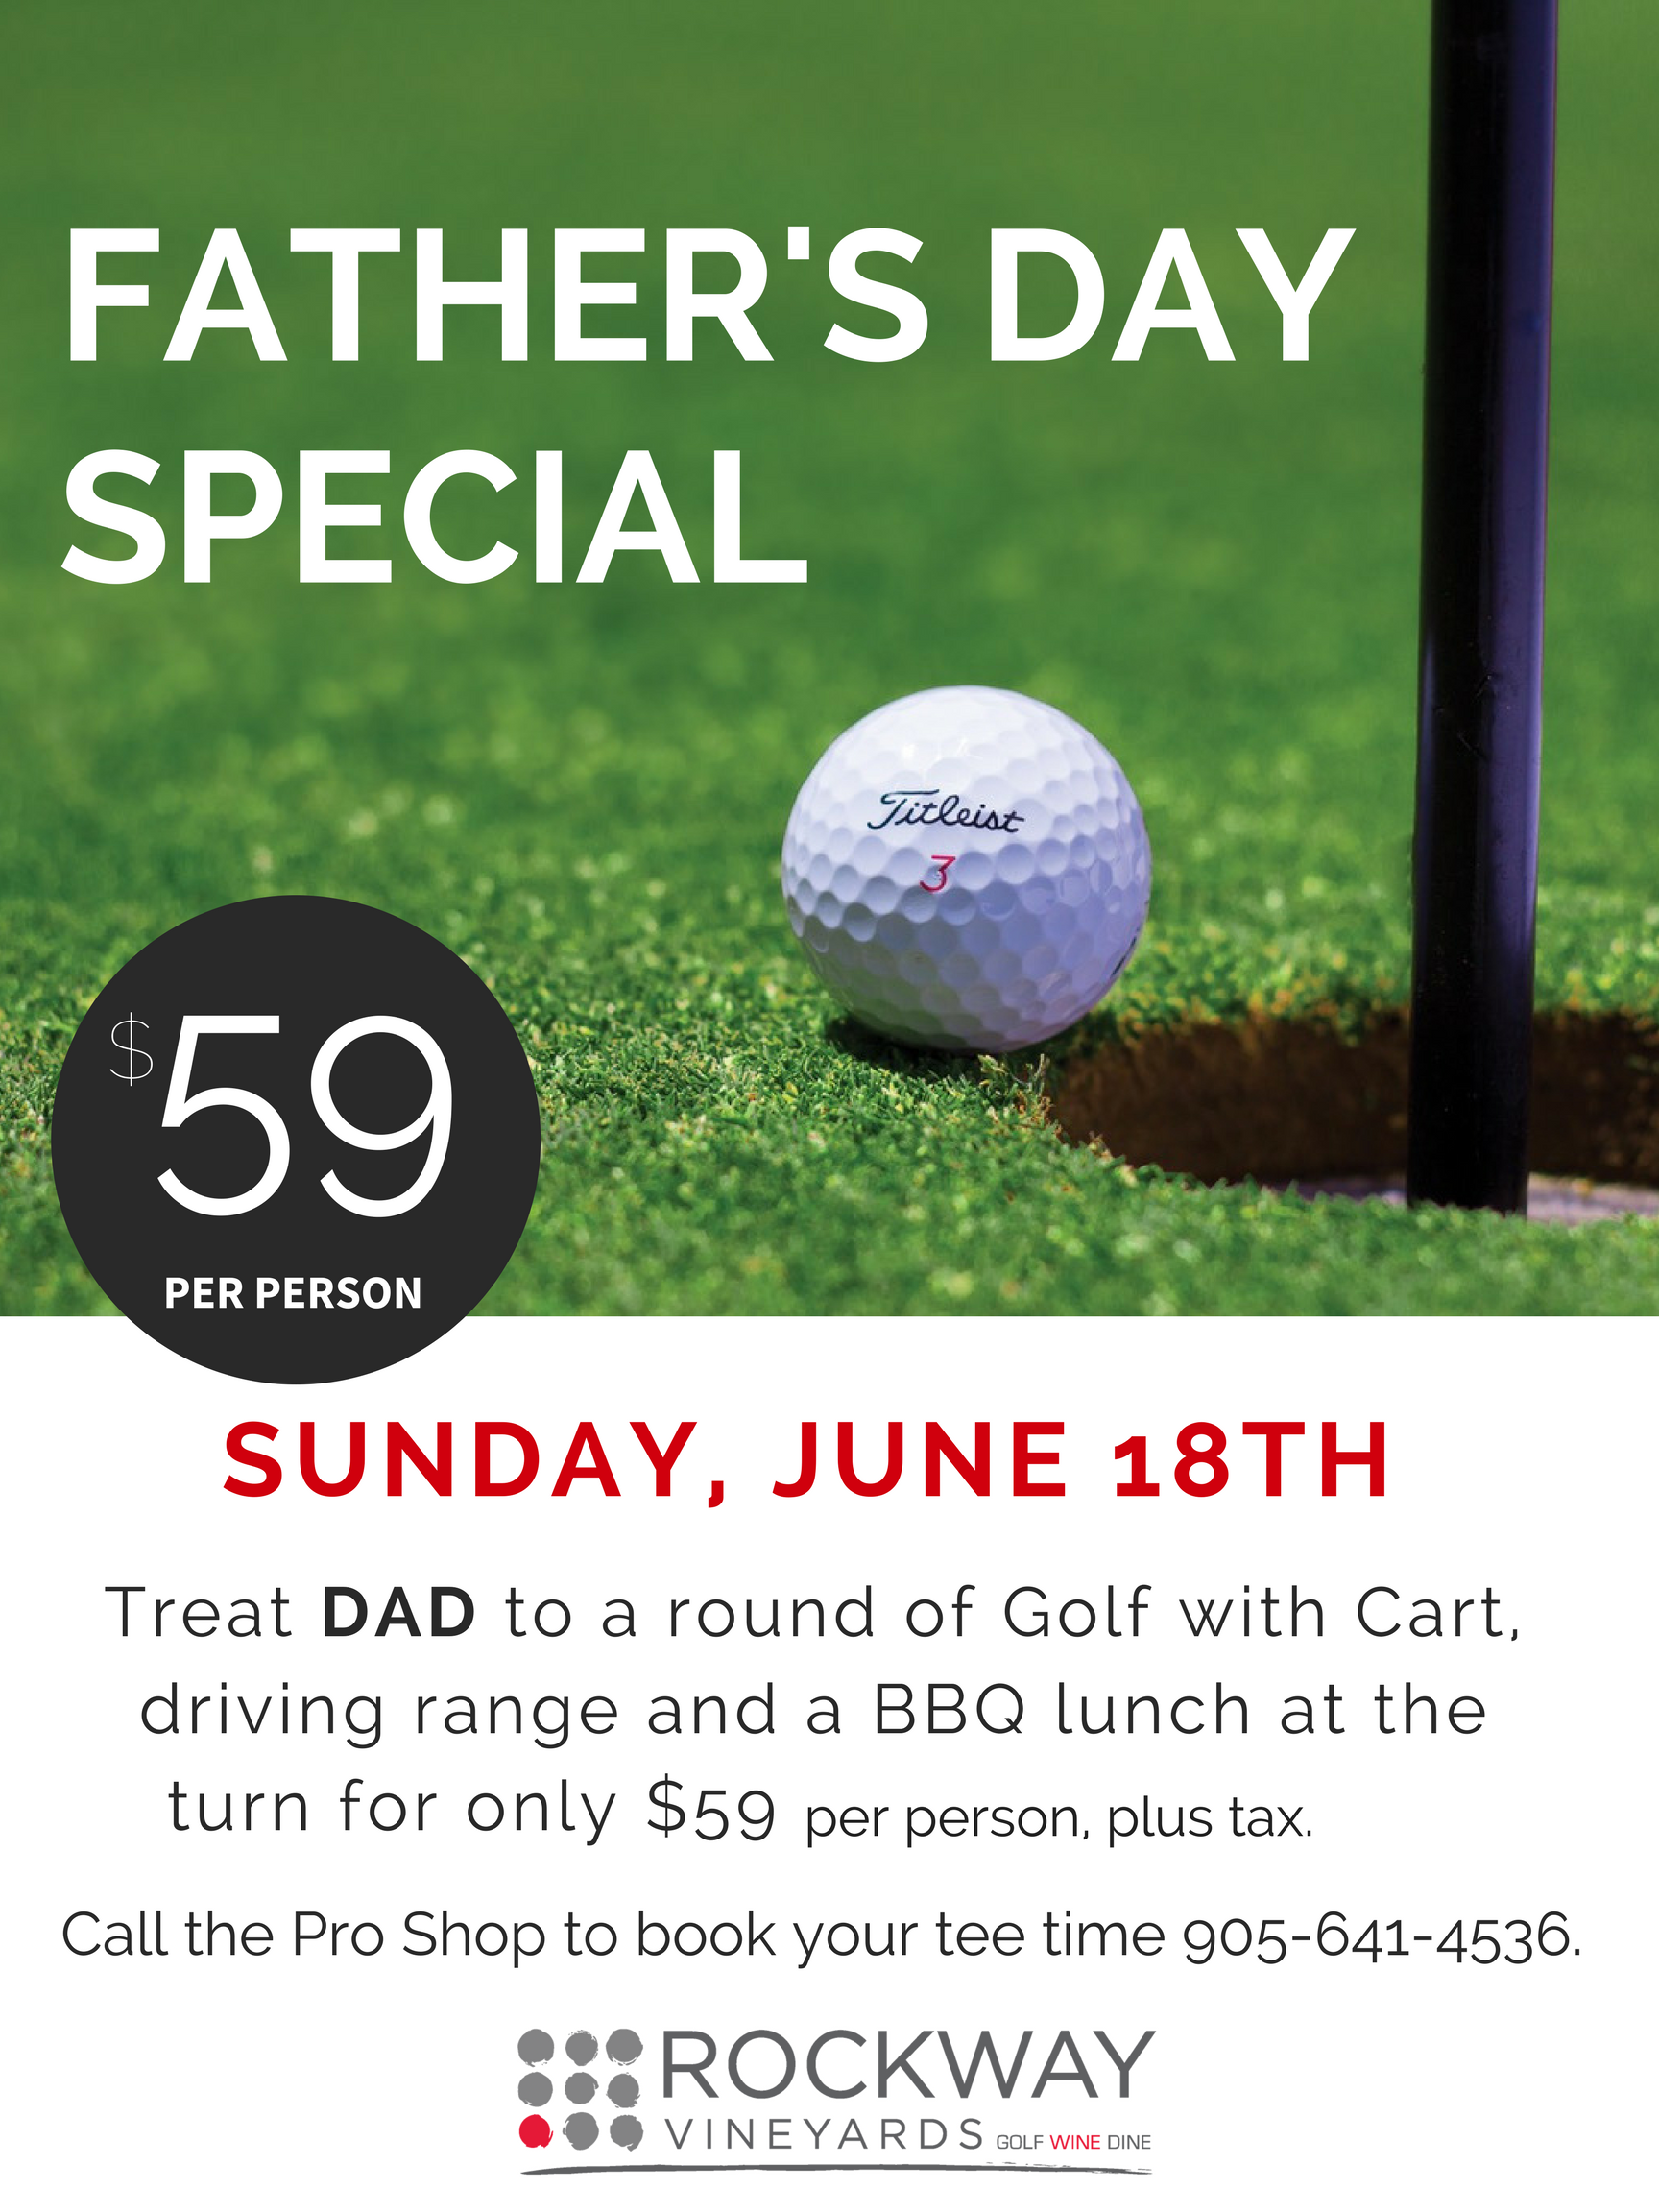 rockway vineyards, niagara golf, father's day, golf special